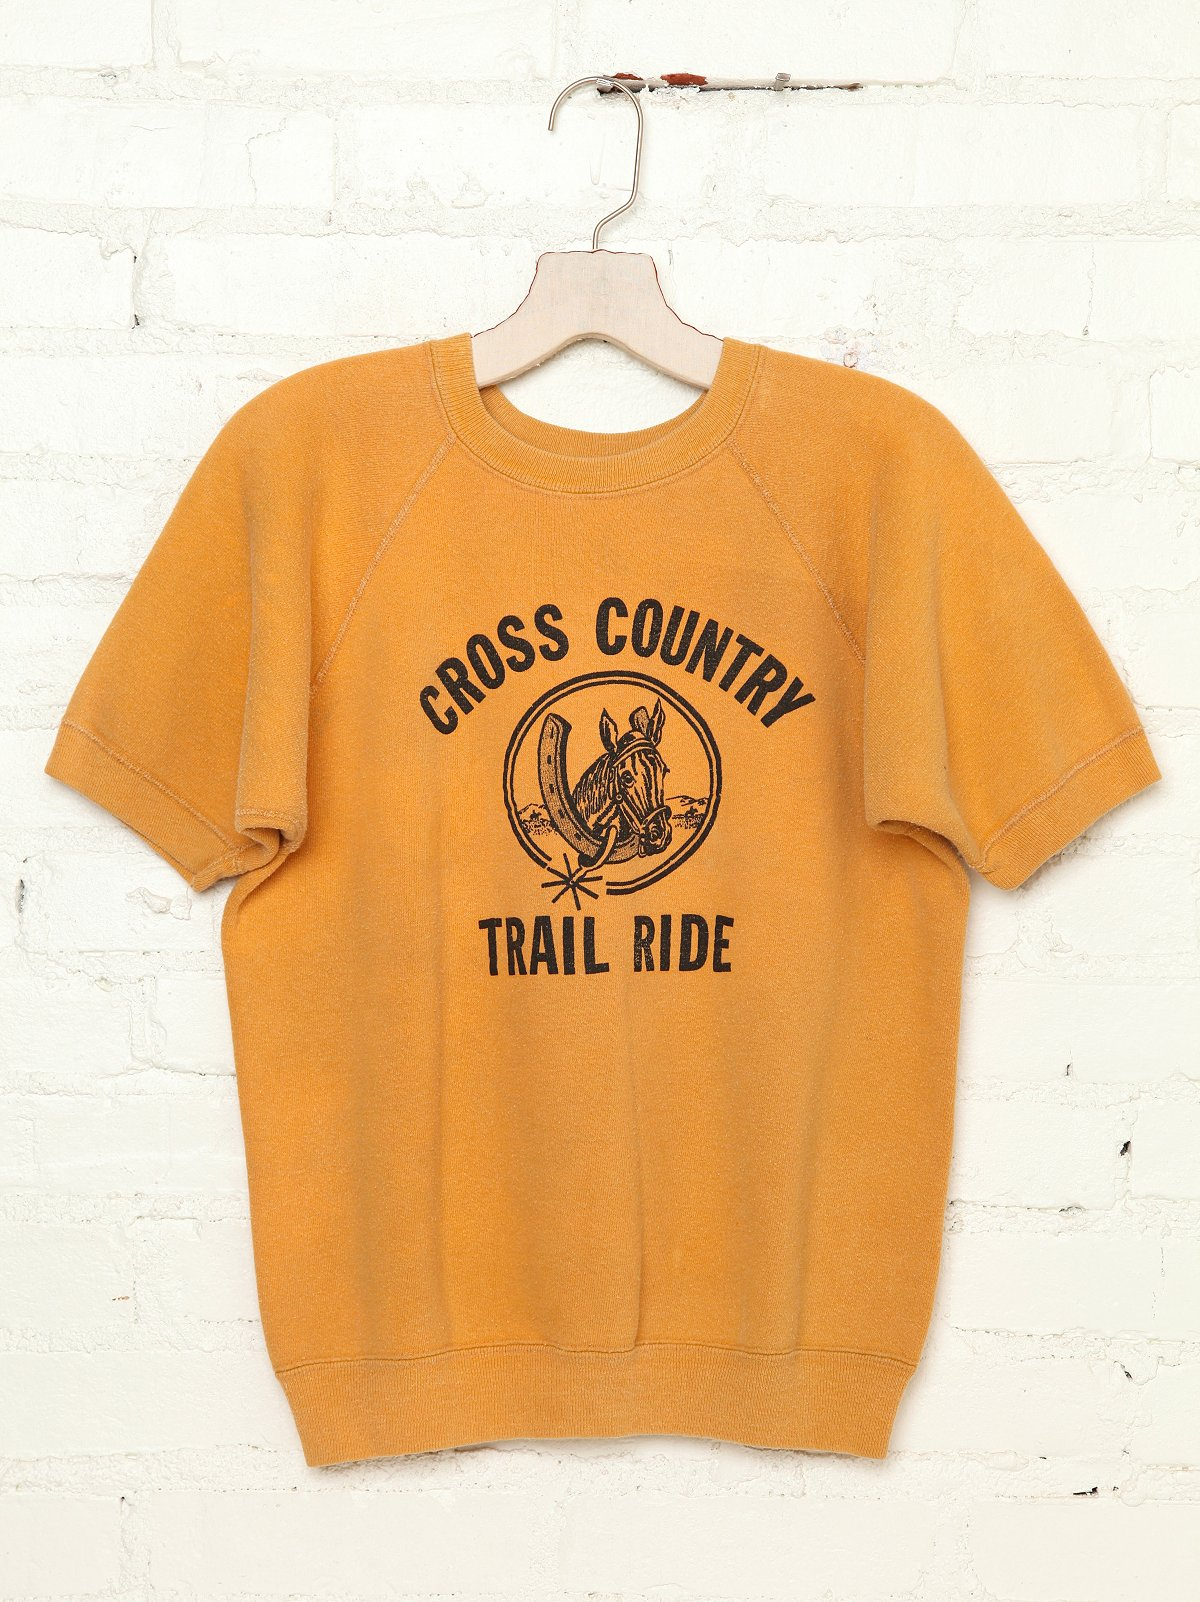 Vintage Cross Country Sweatshirt